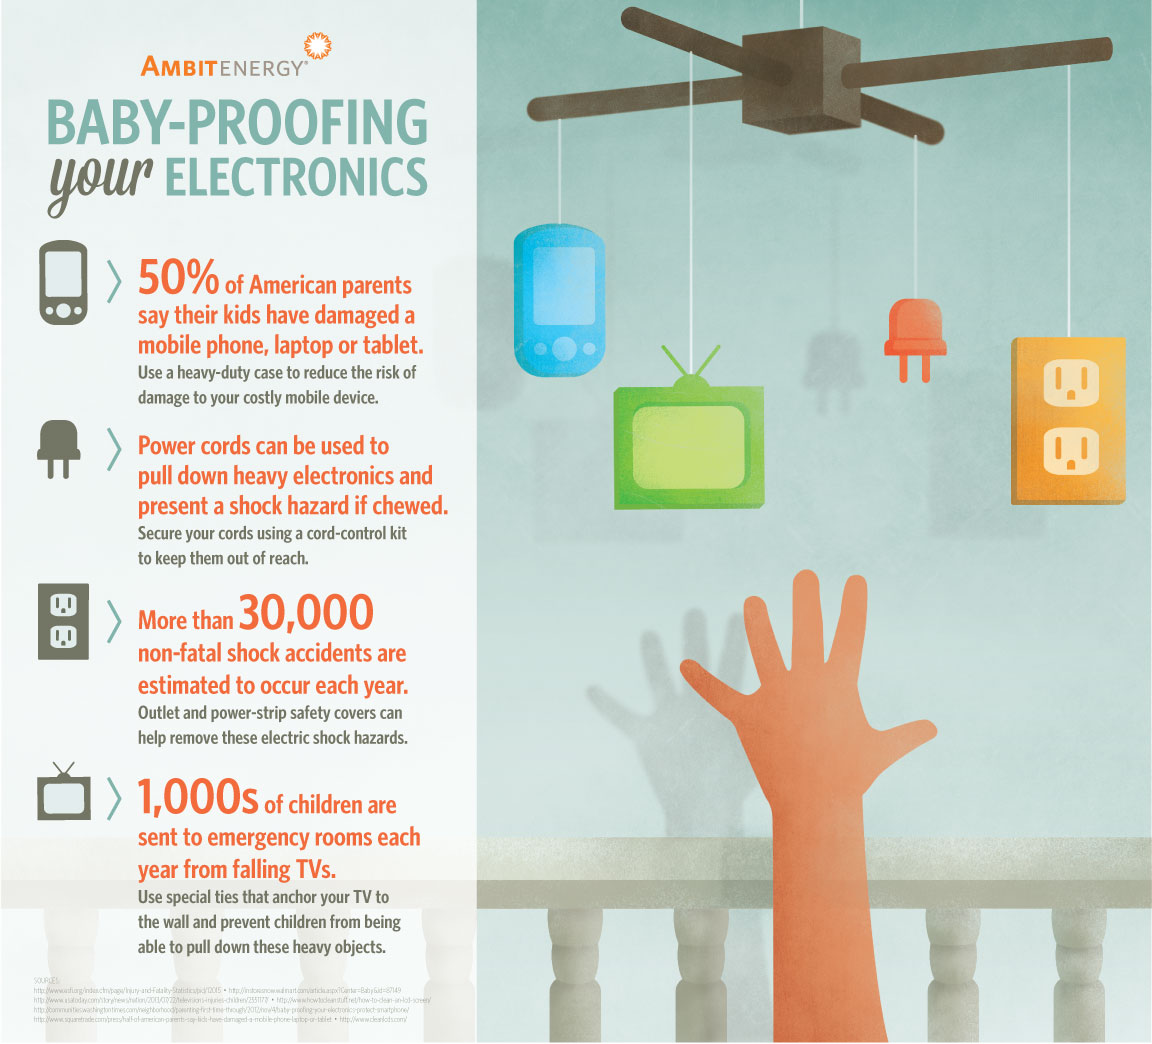 Infographic: Digital Update: How to Baby-Proof Your Electronics